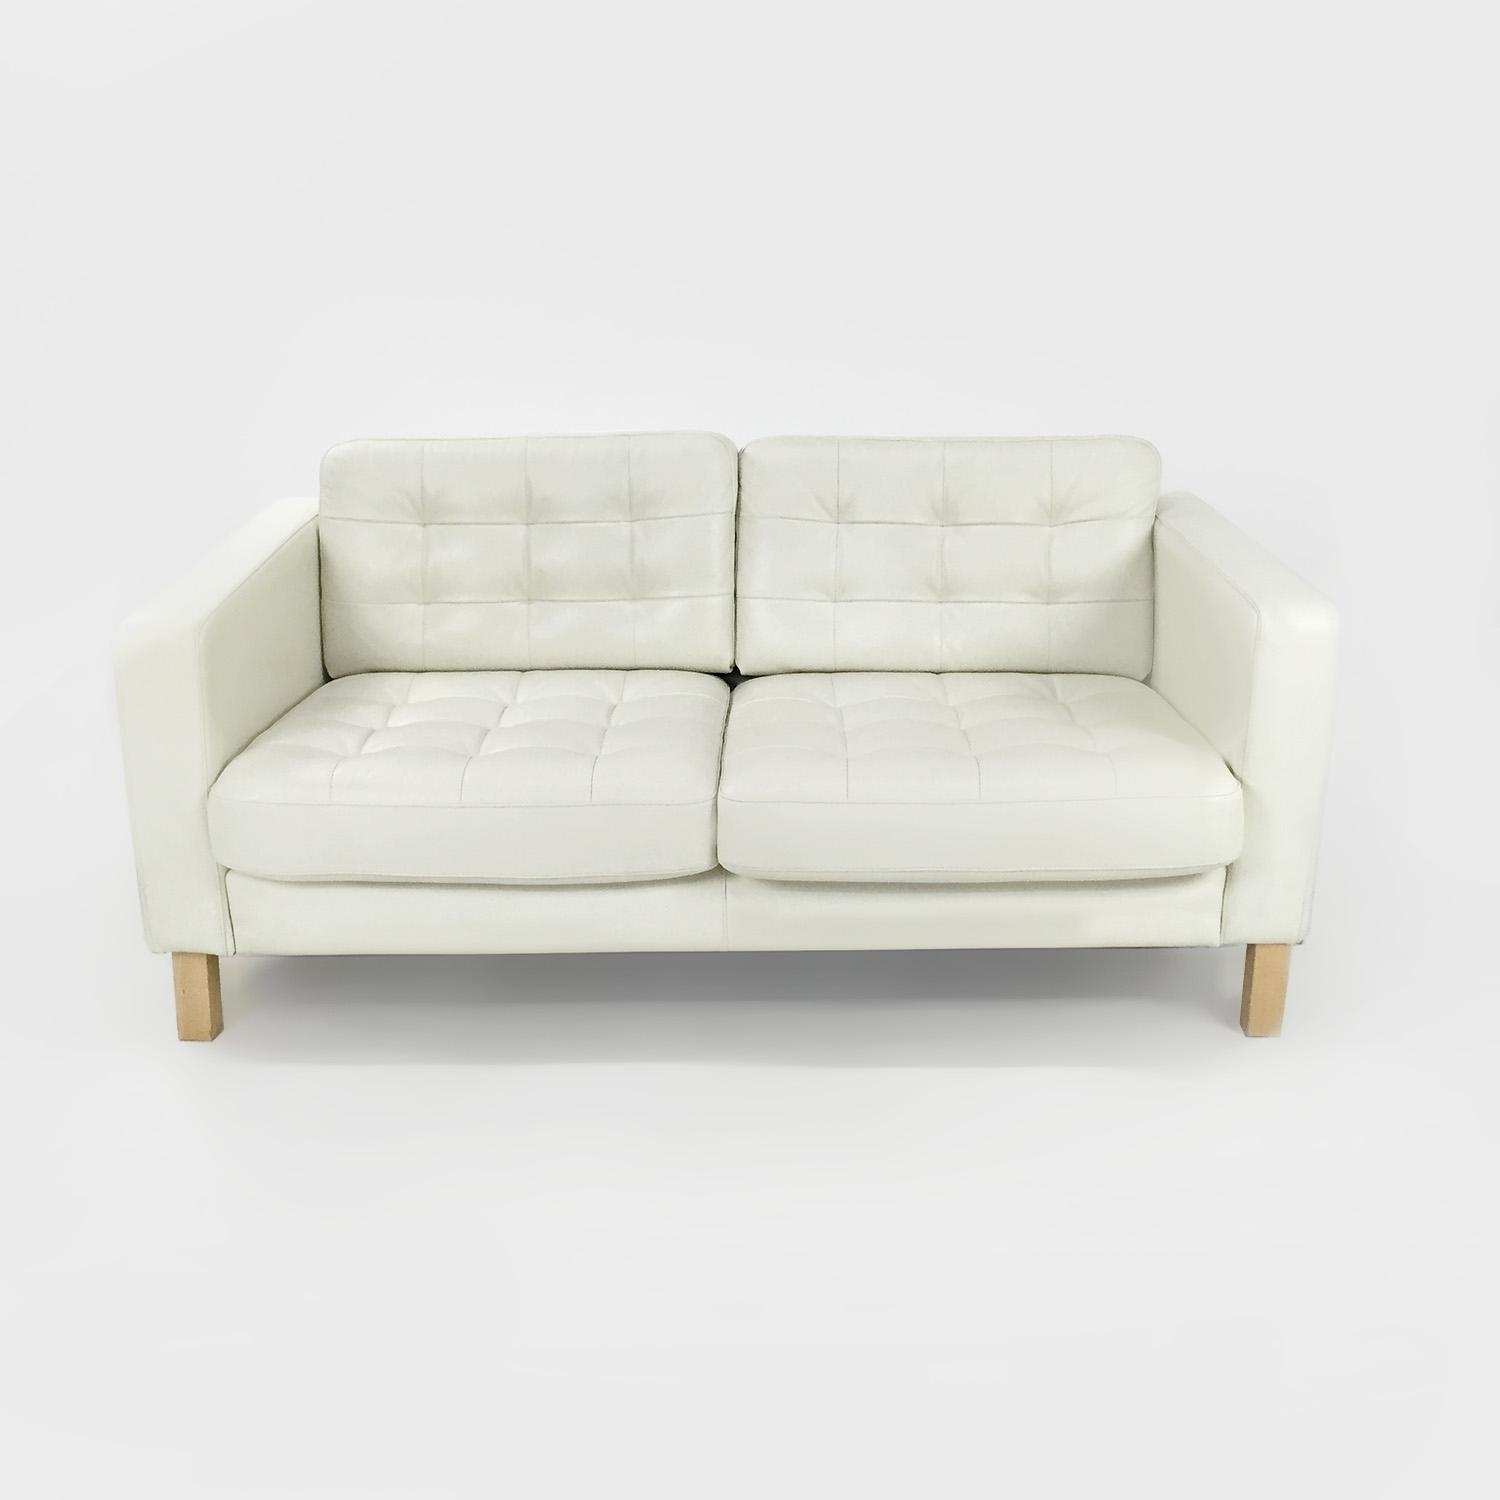 50% Off – Ikea White Leather Couch / Sofas Inside Off White Leather Sofa And Loveseat (View 9 of 20)